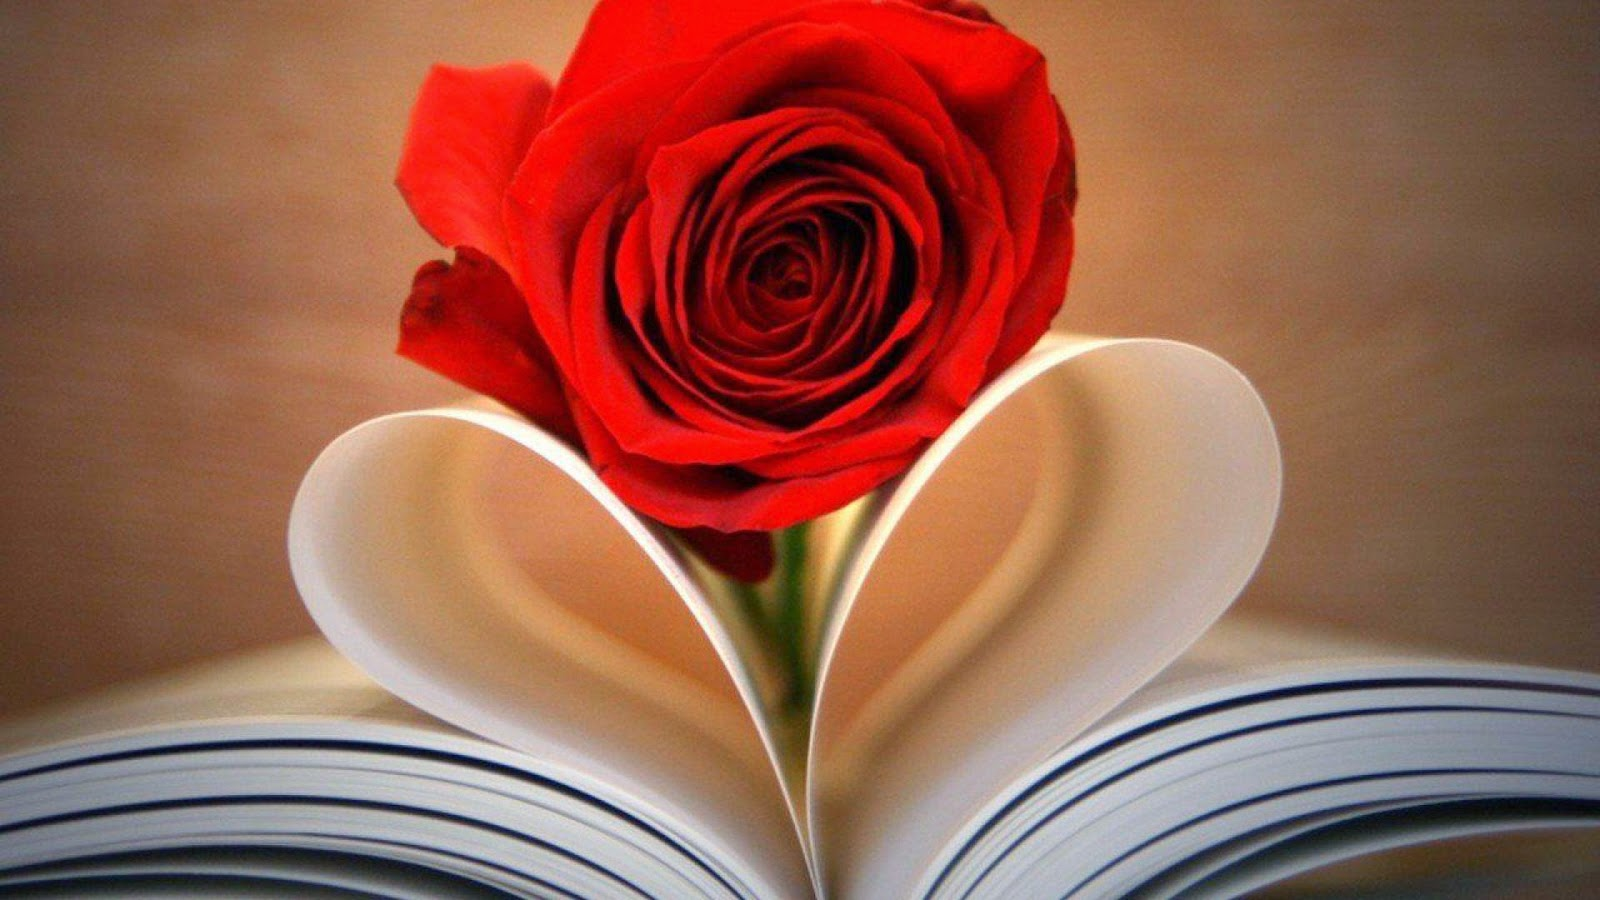 Heart Book and Rose Wallpaper